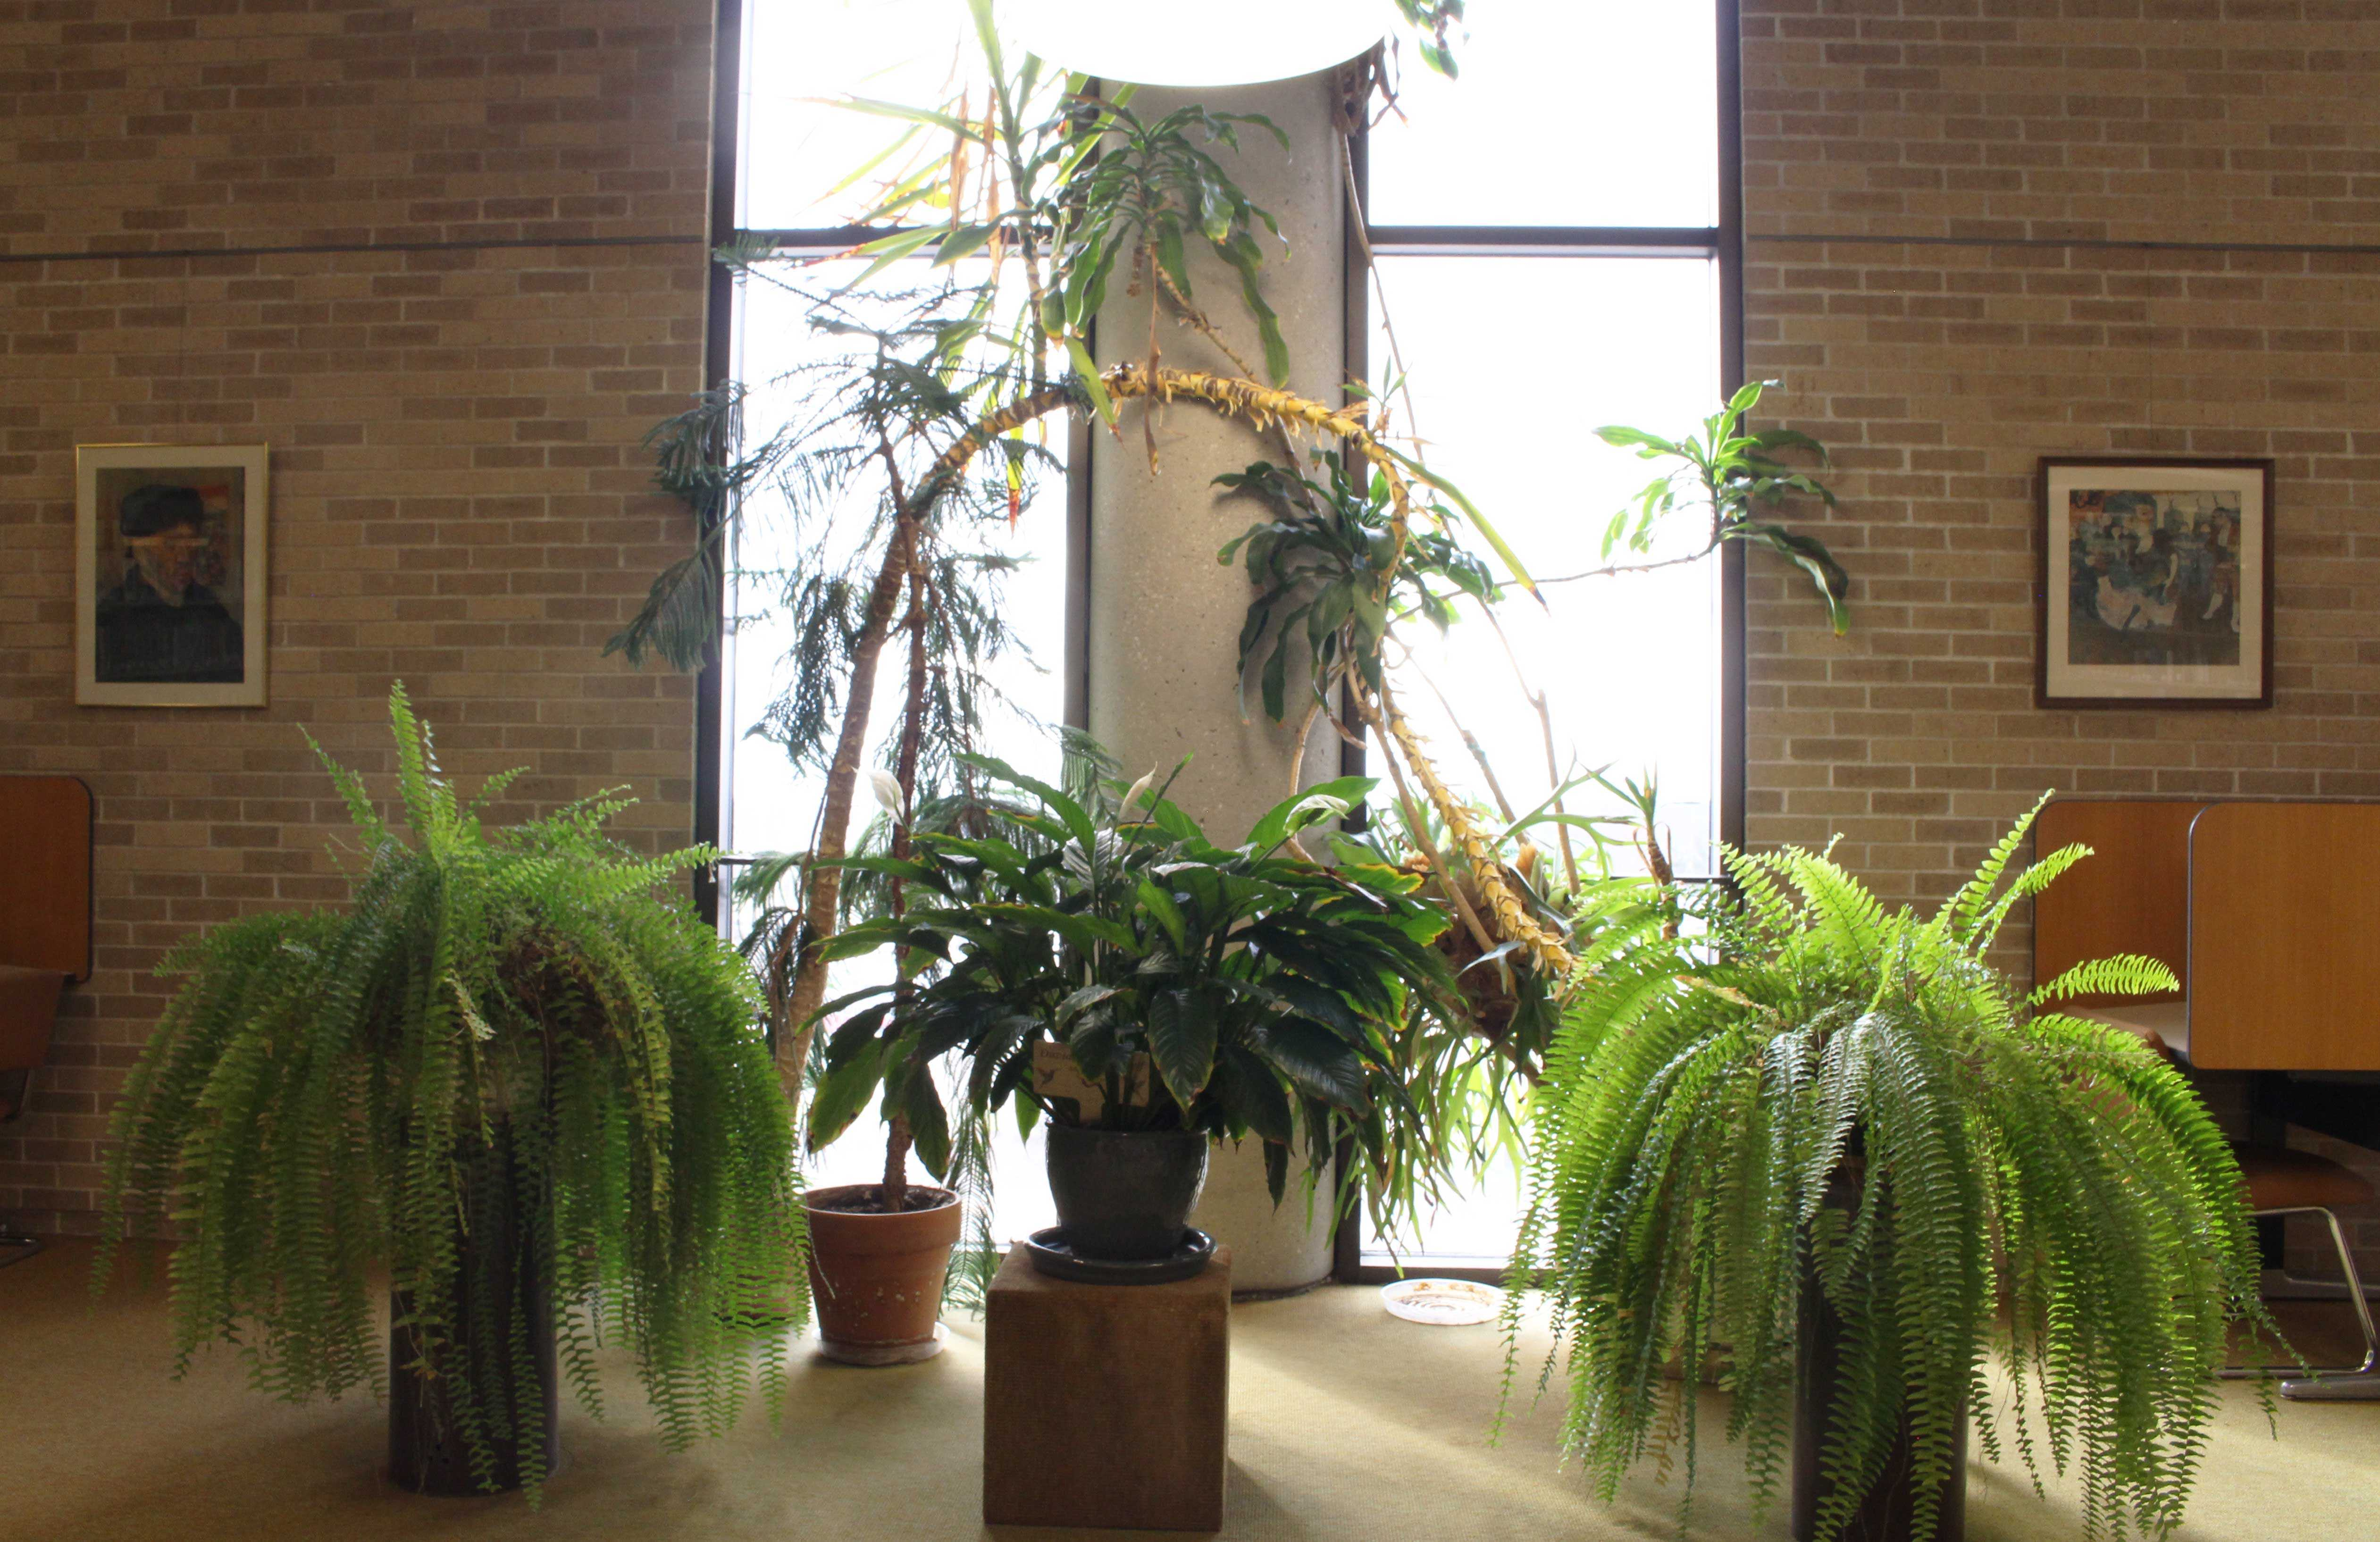 The Leslie F. Malpass Library is home to many plant species that have have their own preference on where in the library they stay.